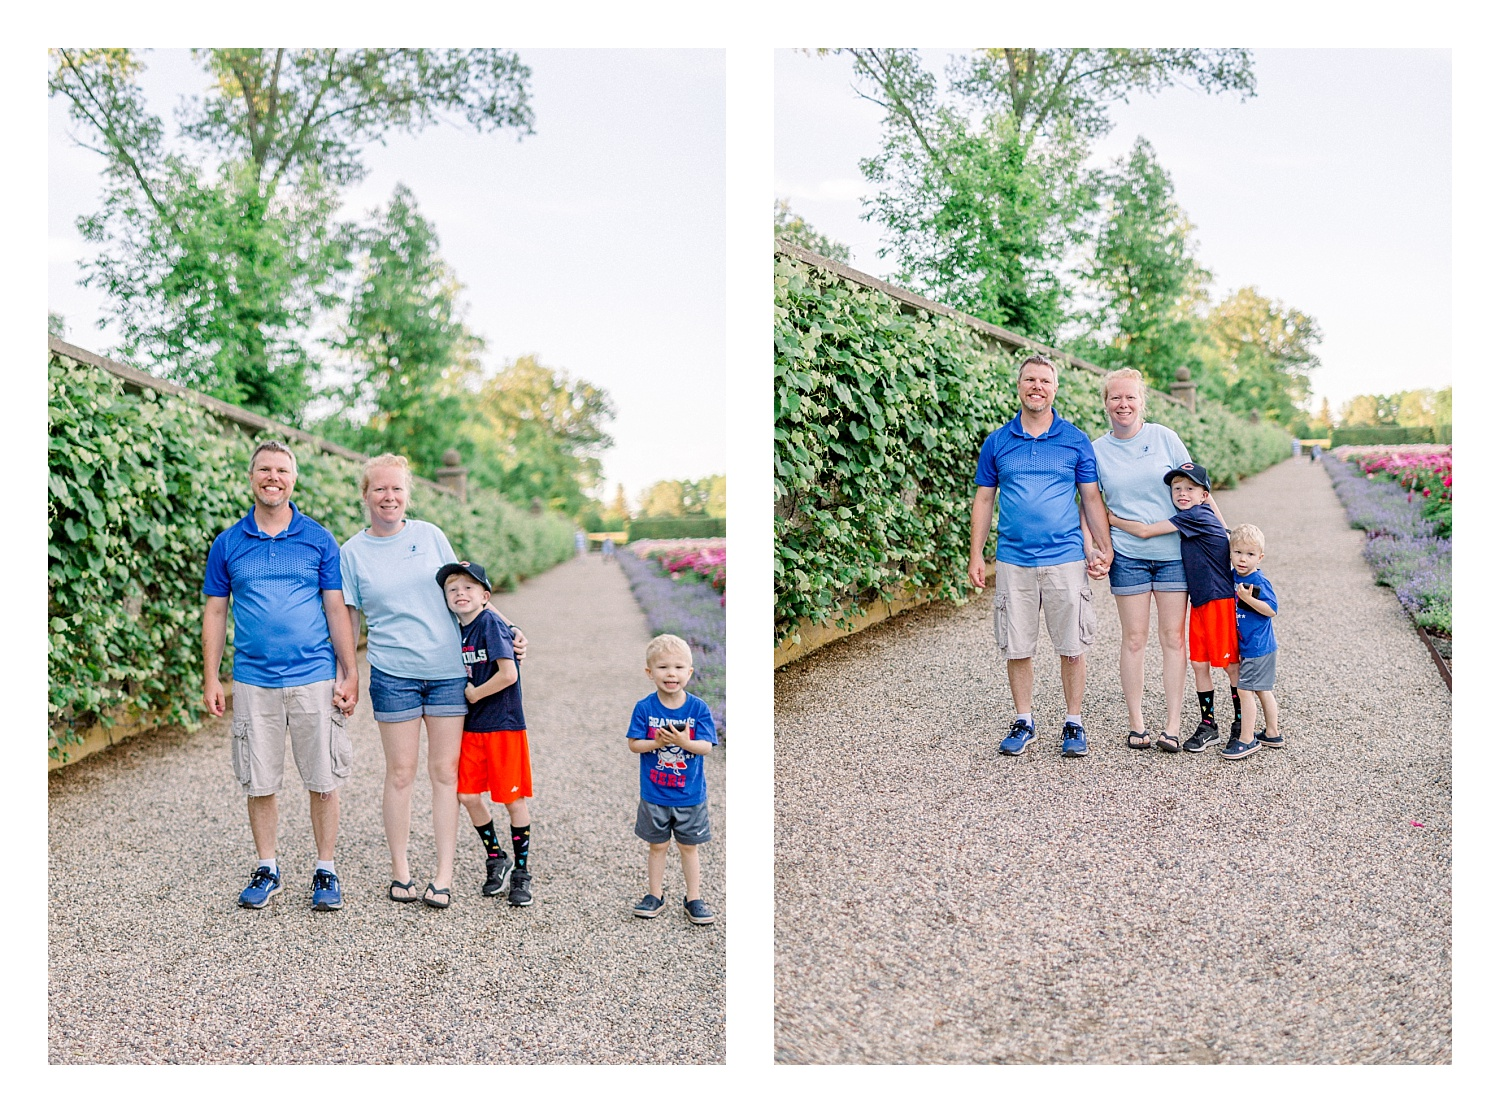 Wisconsin-Family-Photographers-Elle-x-Troy-Photography-The-Bopp-Family-Robert-Allerton-Park-Monticello-Illinois_0008.jpg